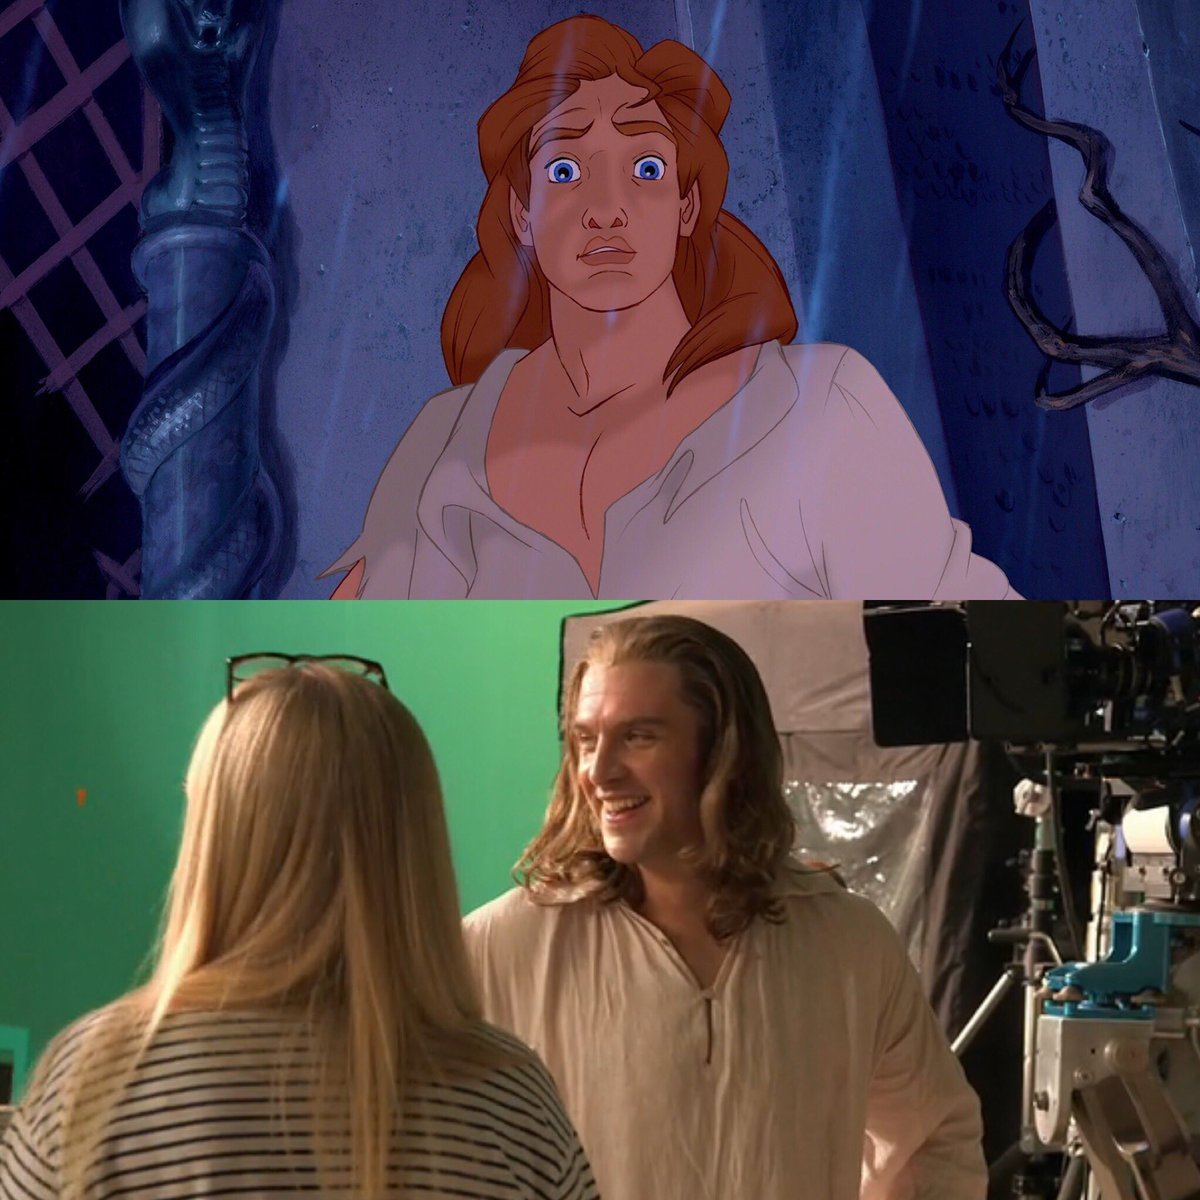 Dan Stevens as Prince Adam